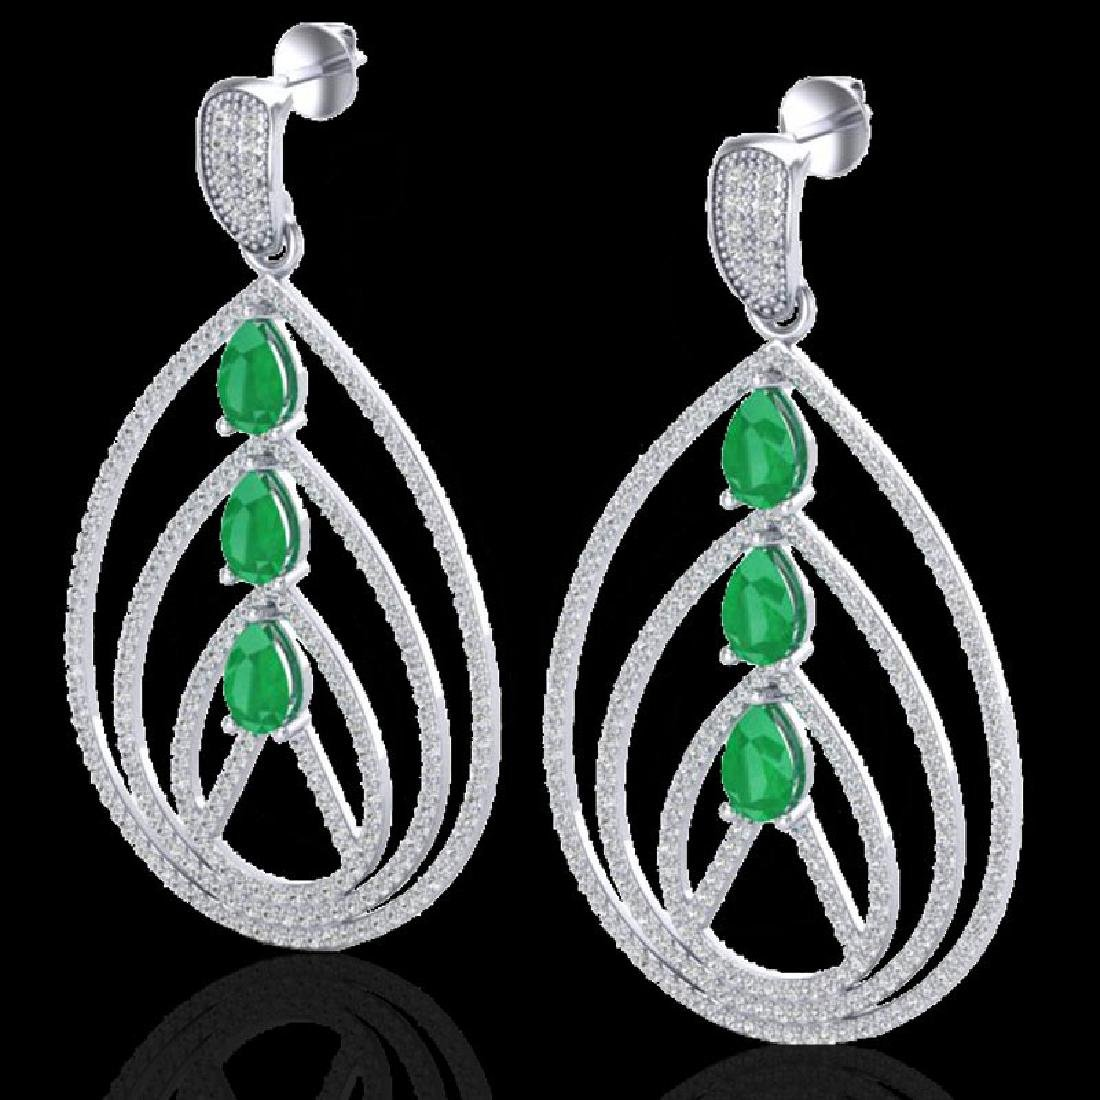 4 CTW Emerald & Micro Pave VS/SI Diamond Earrings 18K